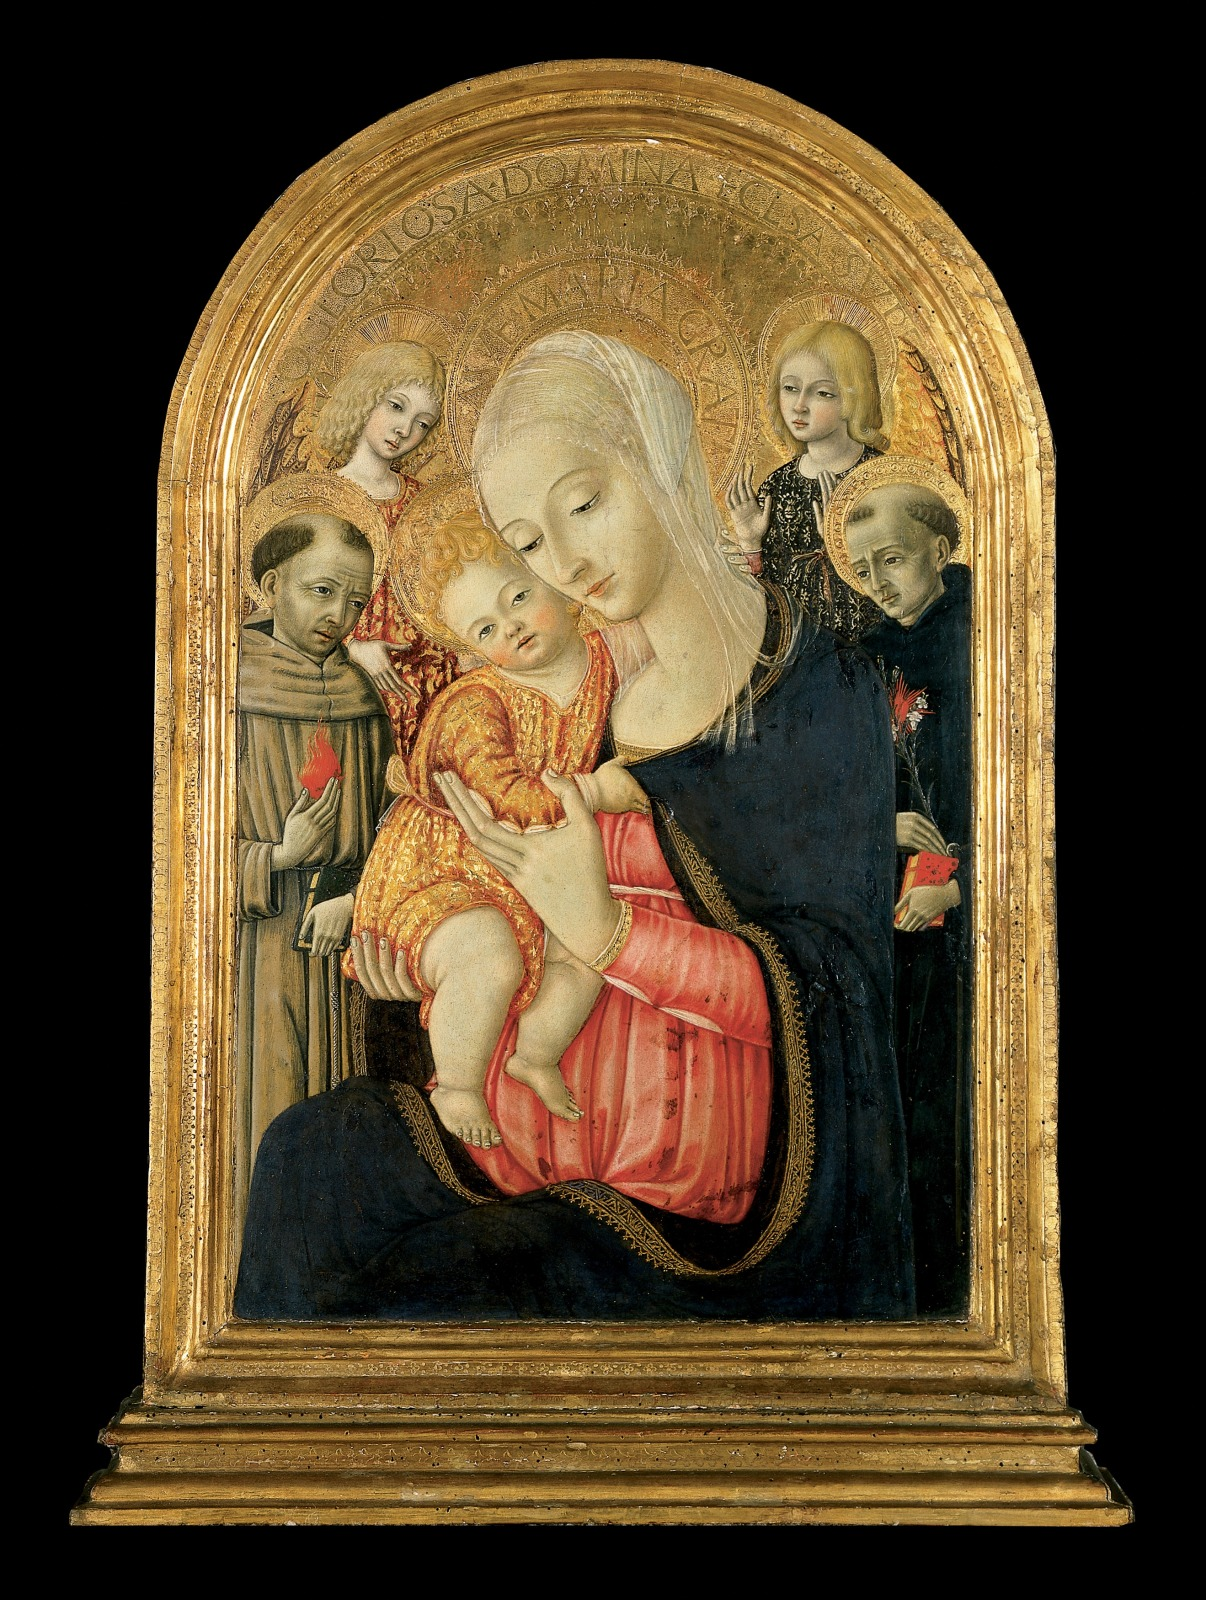 Madonna and Child with Saint Anthony of Padua and Saint Nicholas of Tolentino